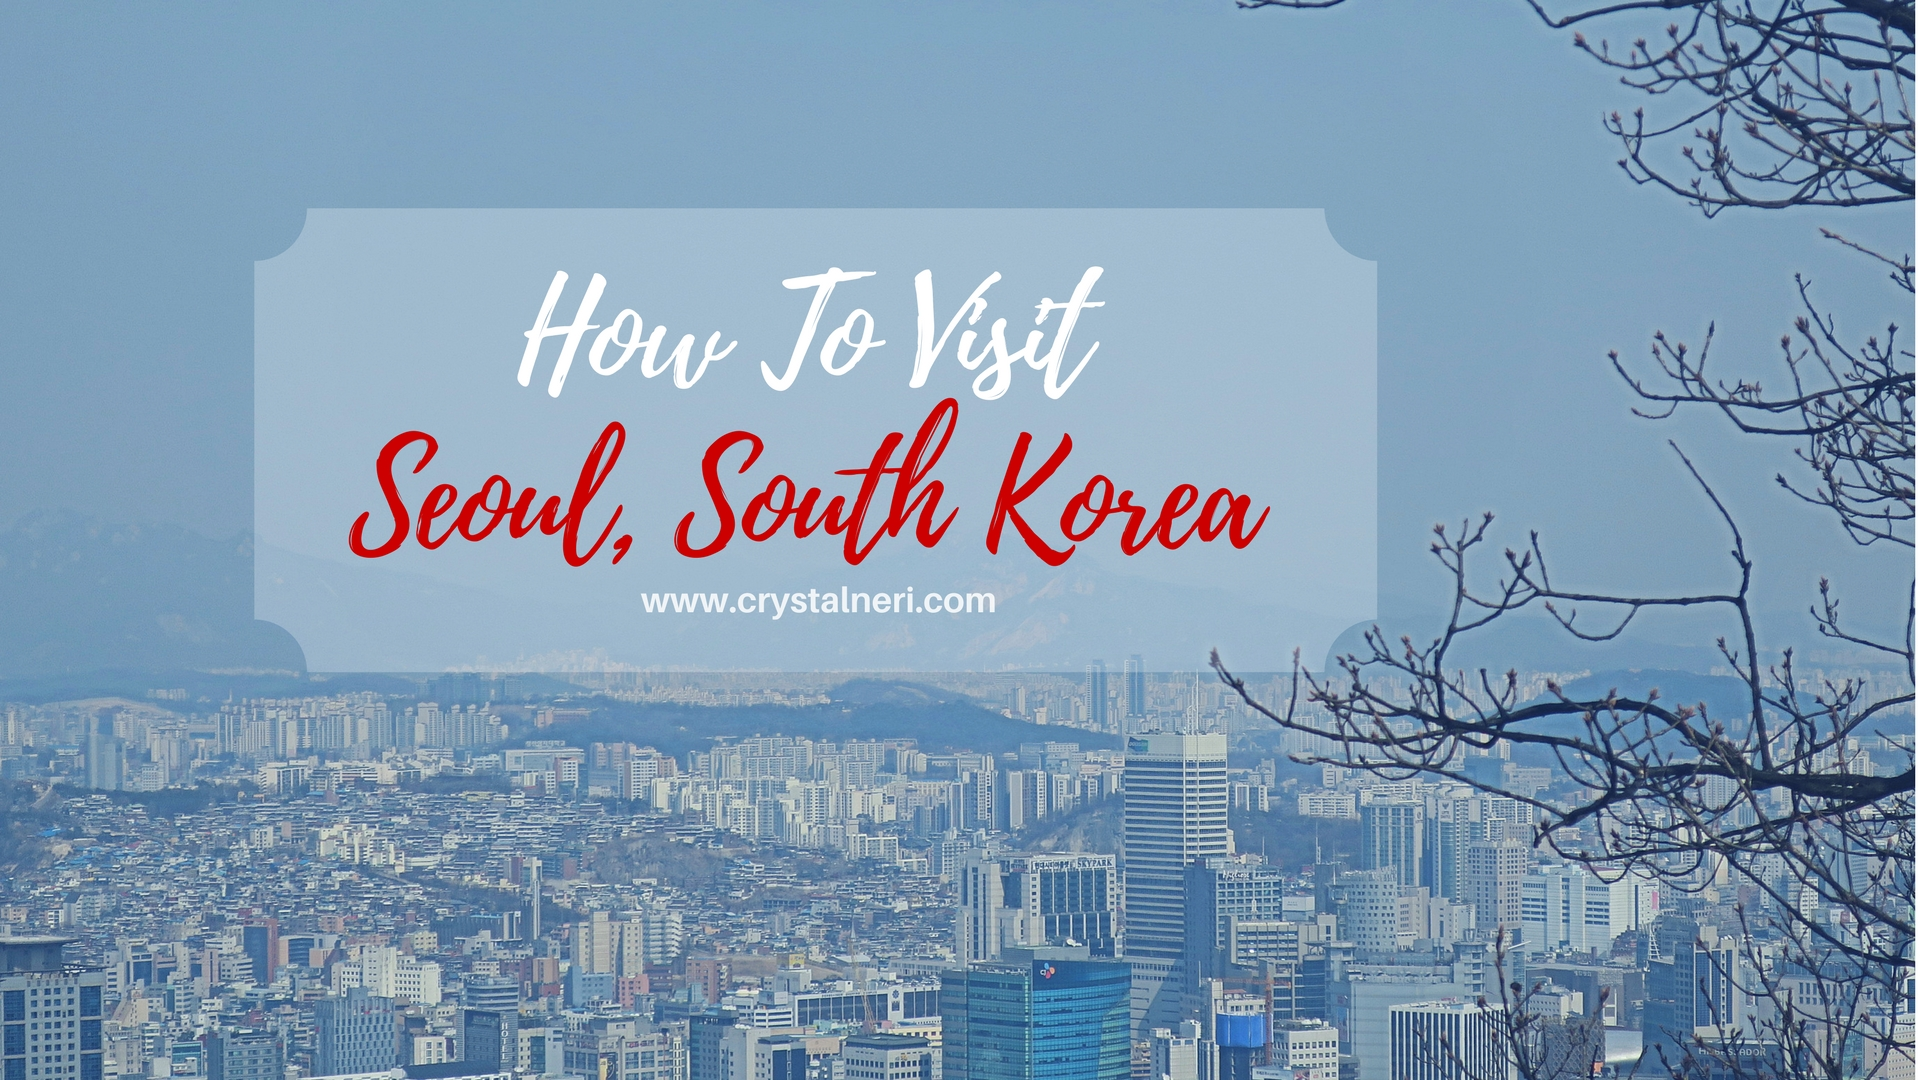 How to Visit South Korea advise